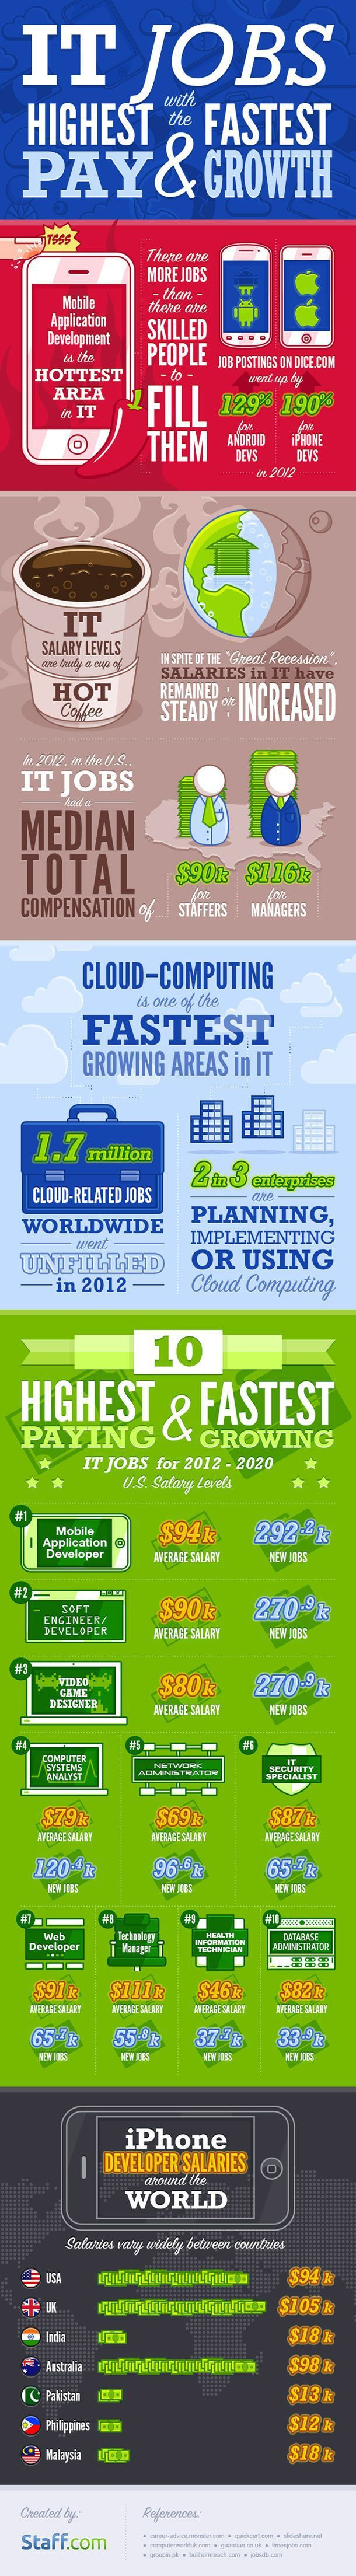 Mobile App Devs: IT Jobs With The Highest Pay U0026 Fastest Growth  [infographic]. Find This Pin And More On Career Tips ...